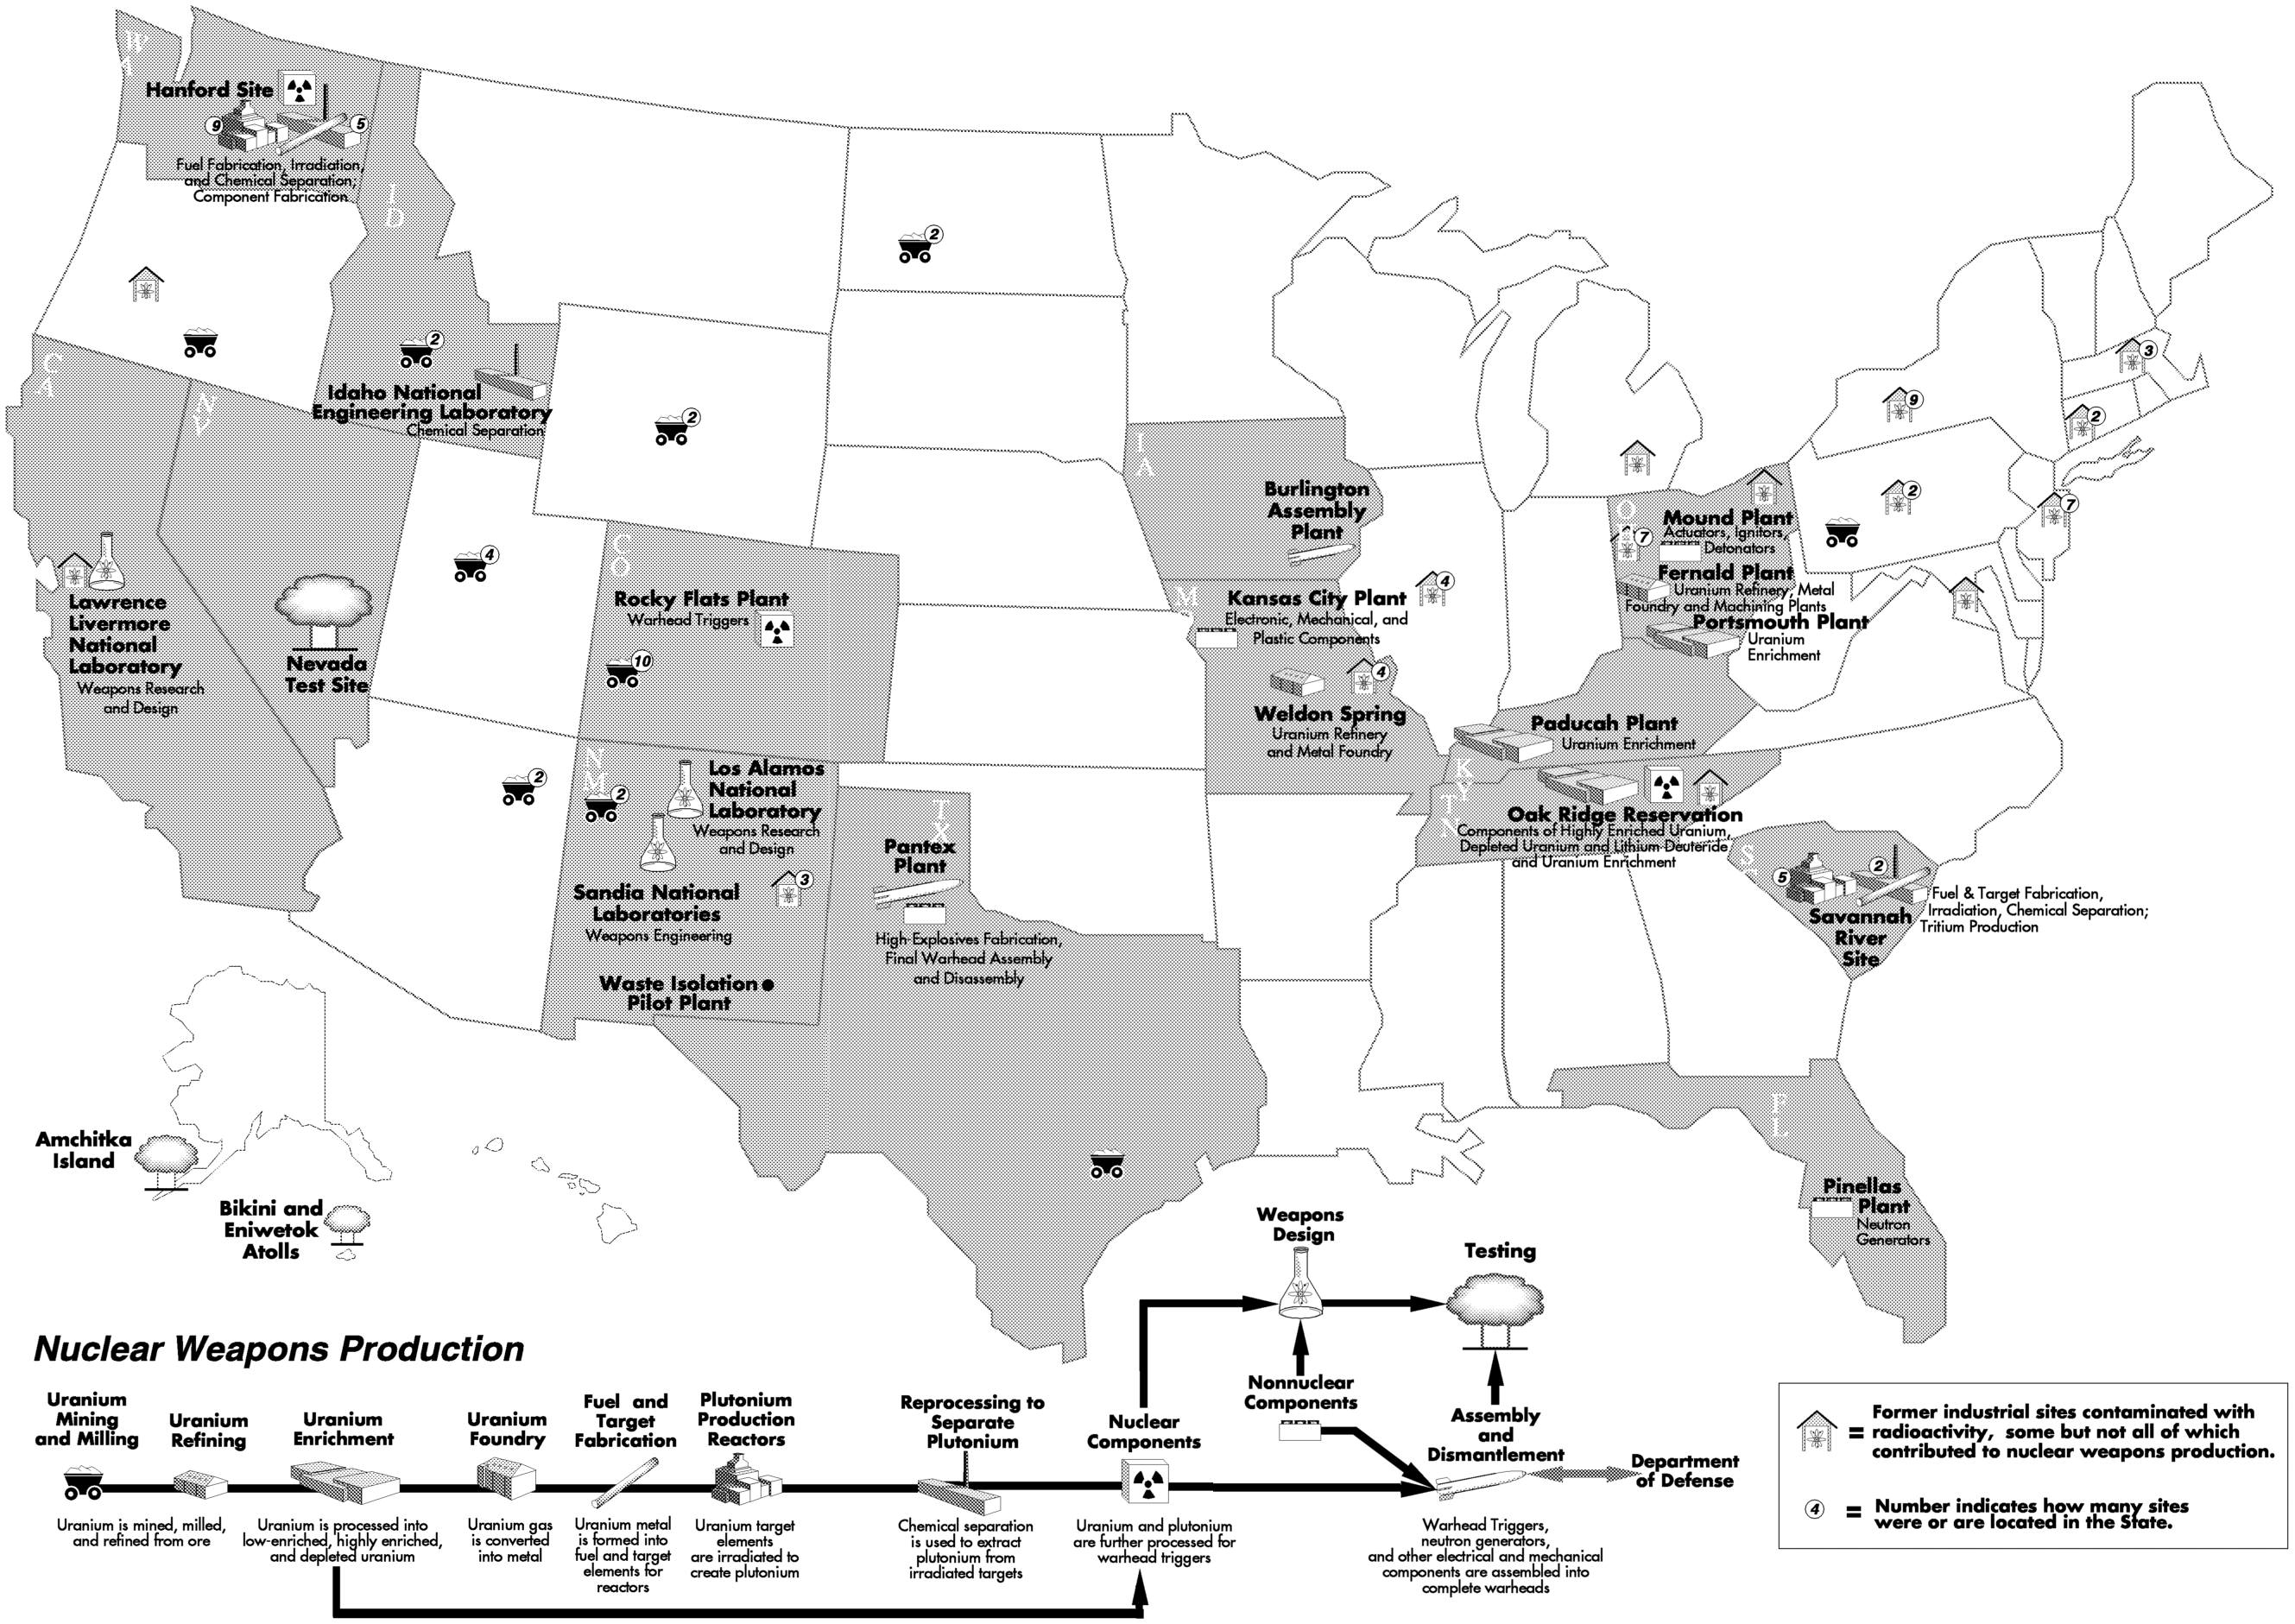 Black-and-white map of the U.S. nuclear weapons production infrastructure, including dozens of industrial facilities, laboratories, test sites, and waste repositories across the country. Below the territorial map is a diagram that reads left to right of the nuclear fuel cycle, starting with mining and milling, to refining, enriching, and fabricating, to nuclear reactor production and reprocessing, to nuclear component making and assembling, to testing and deploying. Waste storage and disposal is missing from the diagram.